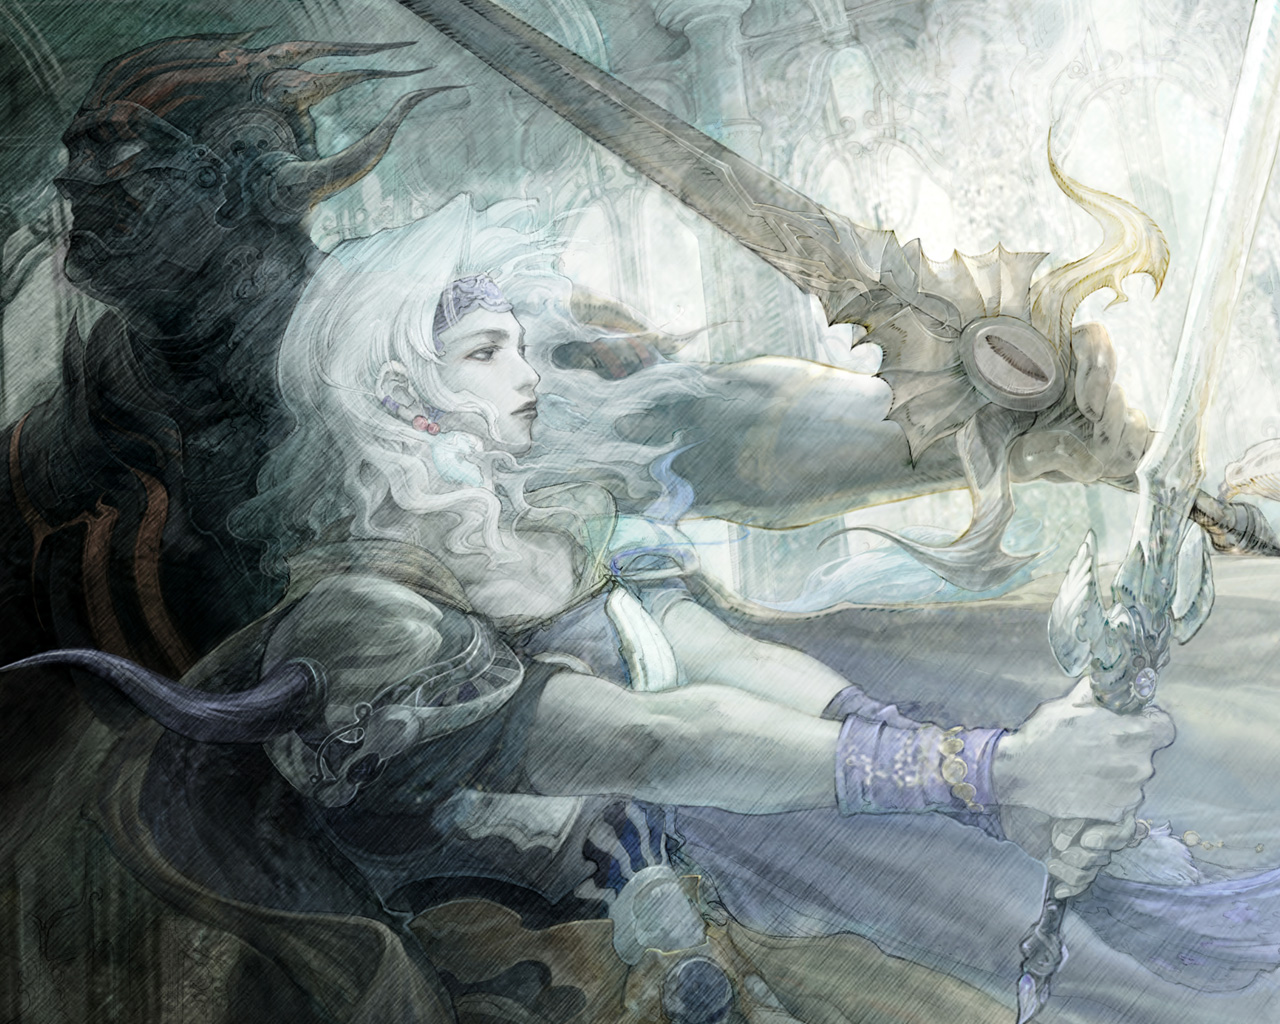 Free Final Fantasy IV Wallpaper in 1280x1024